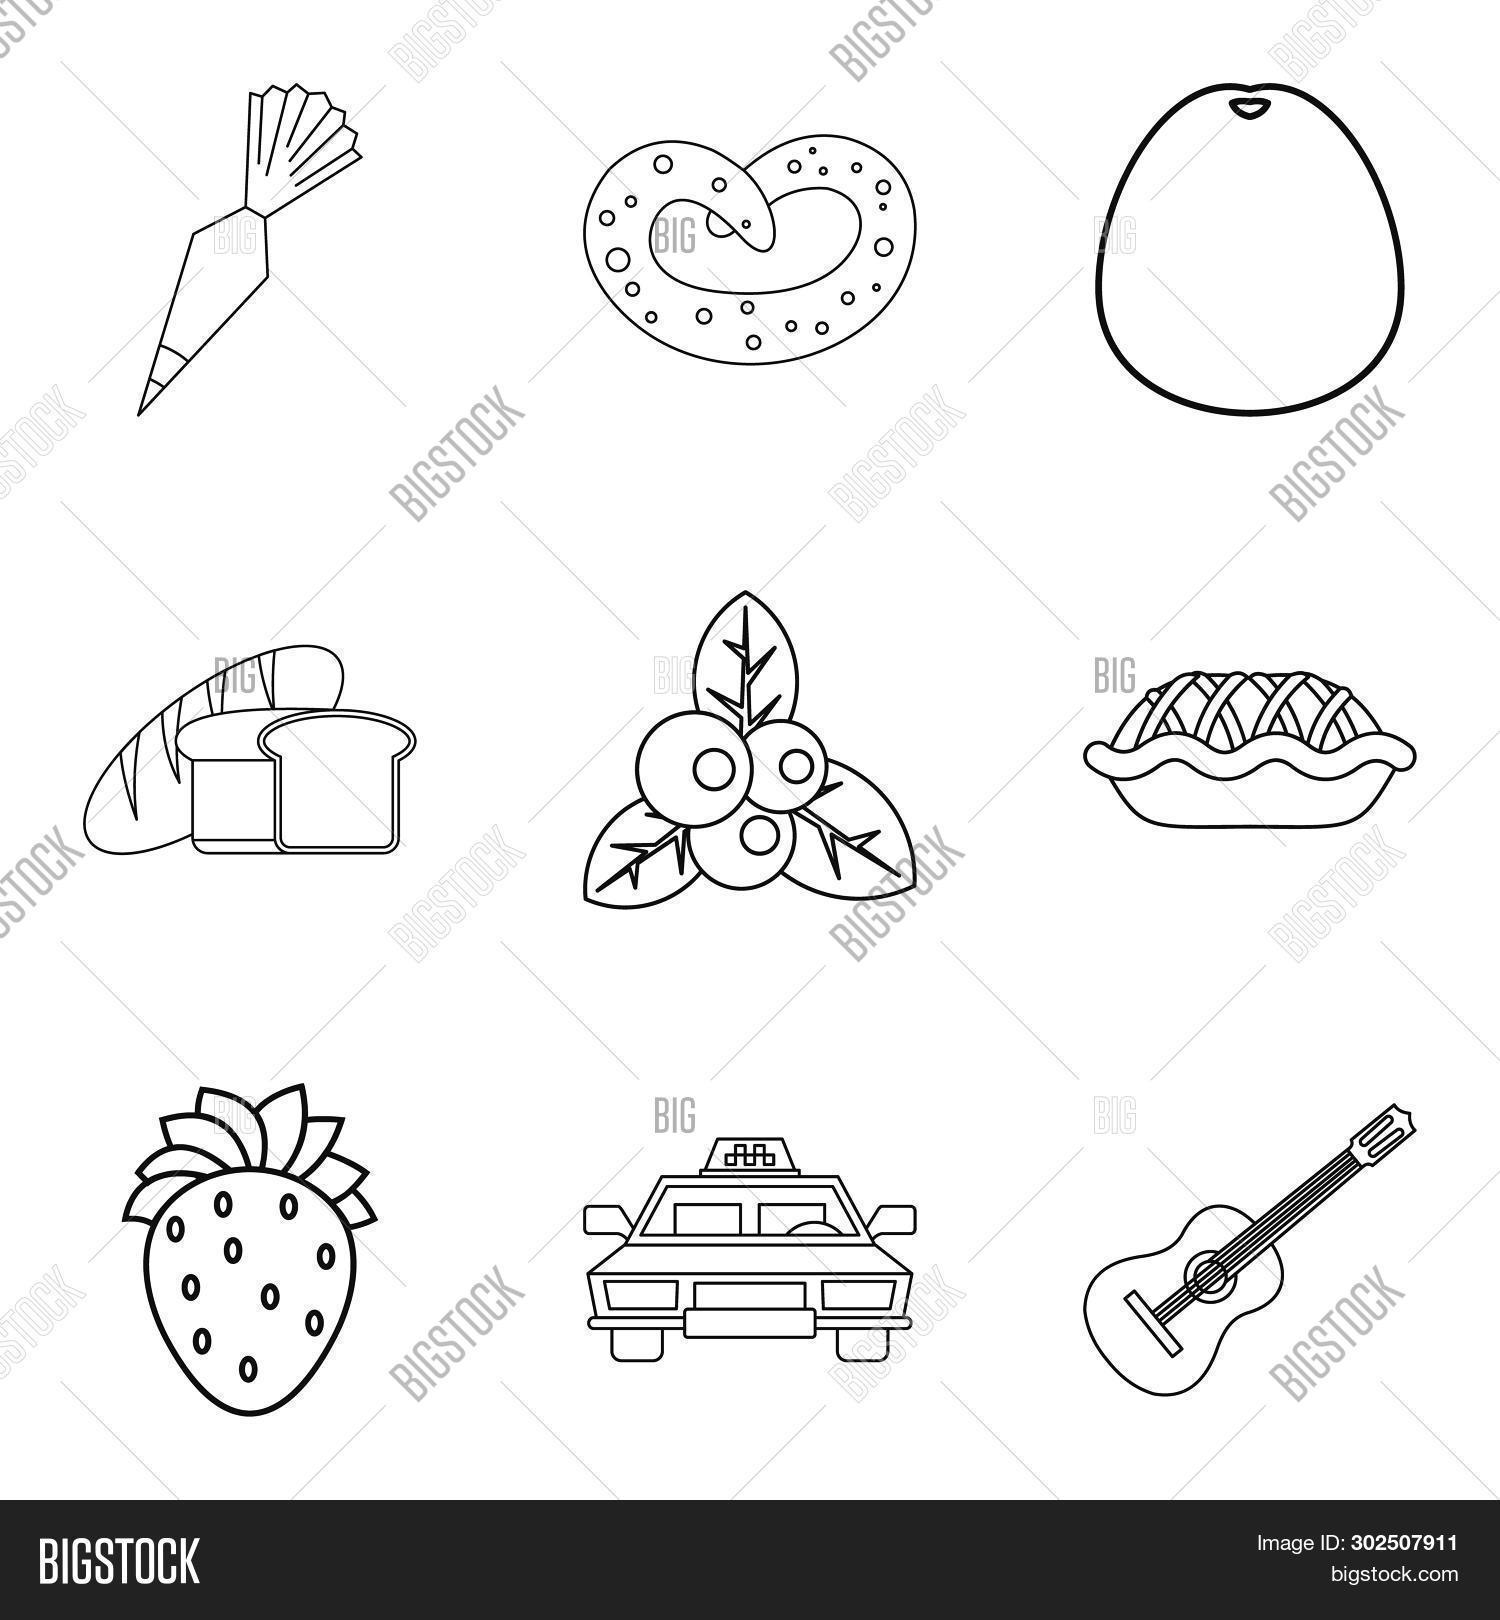 beverage,breakfast,cafe,continental,cuisine,dessert,detox,diet,dietary,diner,dish,drink,eat,eatery,ecology,farm,food,fruit,green,guaranteed,health,healthy,icons,illustration,infusion,isolated,juice,leaf,lettuce,line,macrobiotic,meal,menu,nutrition,organic,outline,ration,raw,restaurant,set,strict,table,taste,tavern,thin,useful,vegan,vegetable,vegetarian